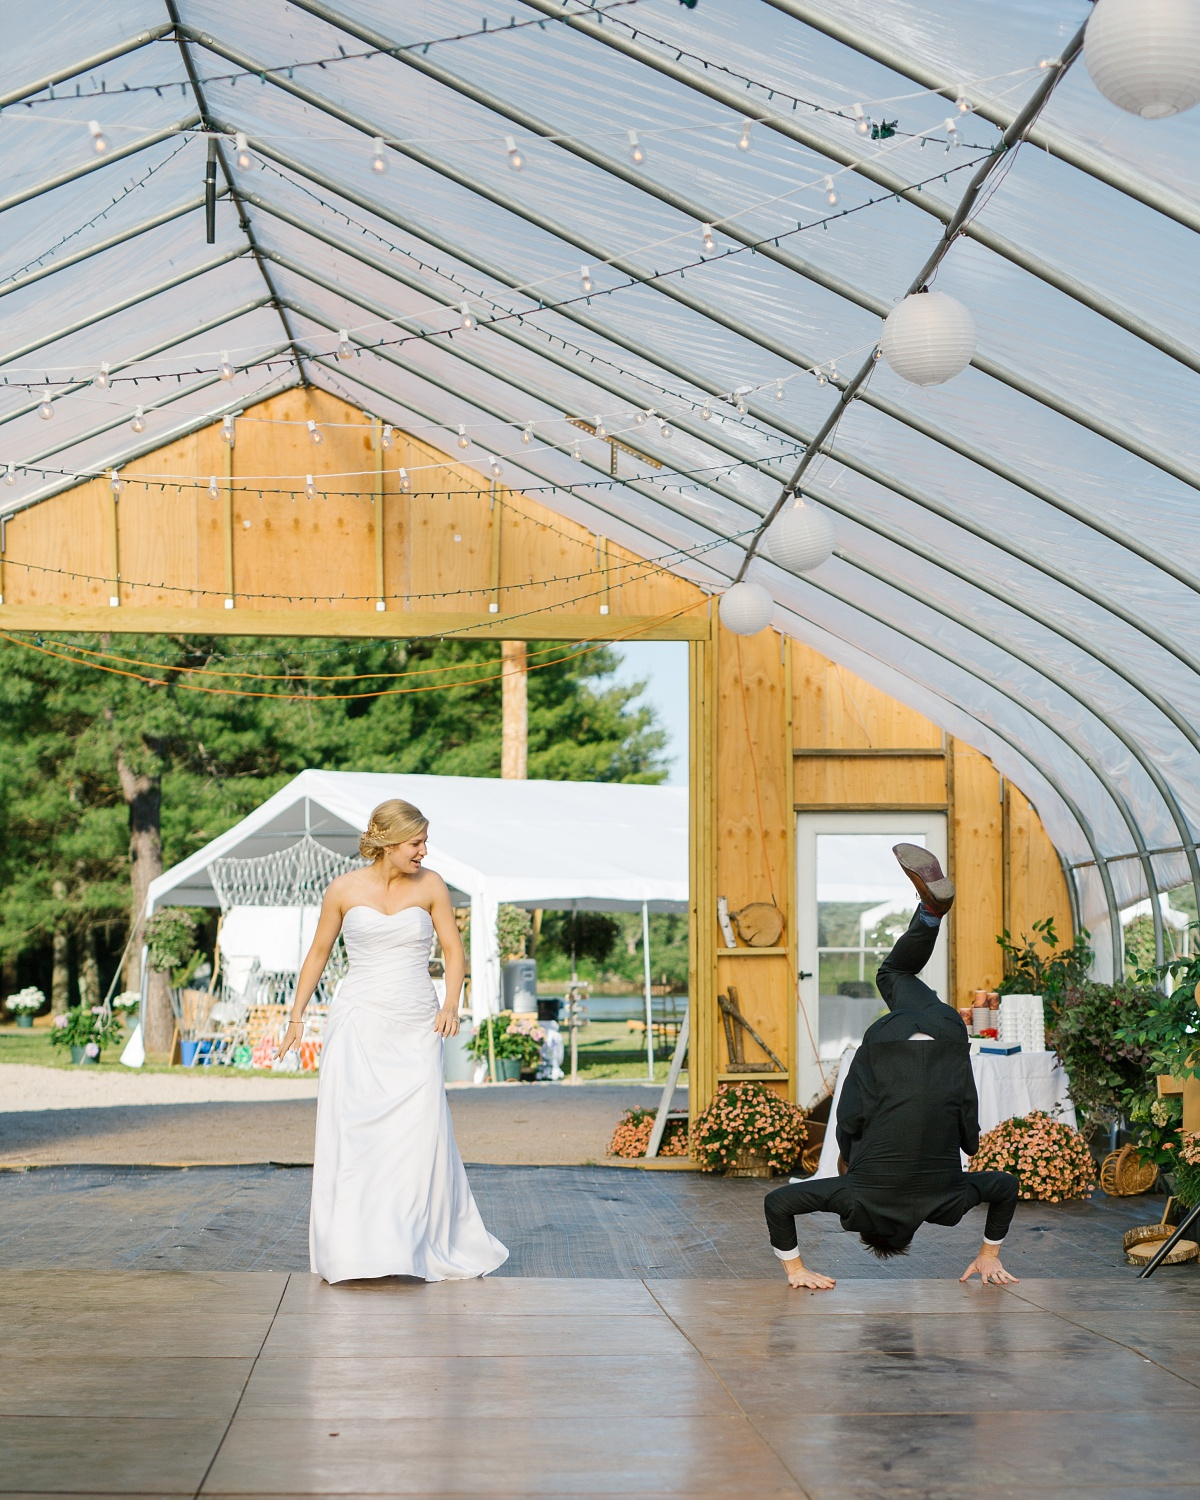 Groom break dances at outdoor barn wedding